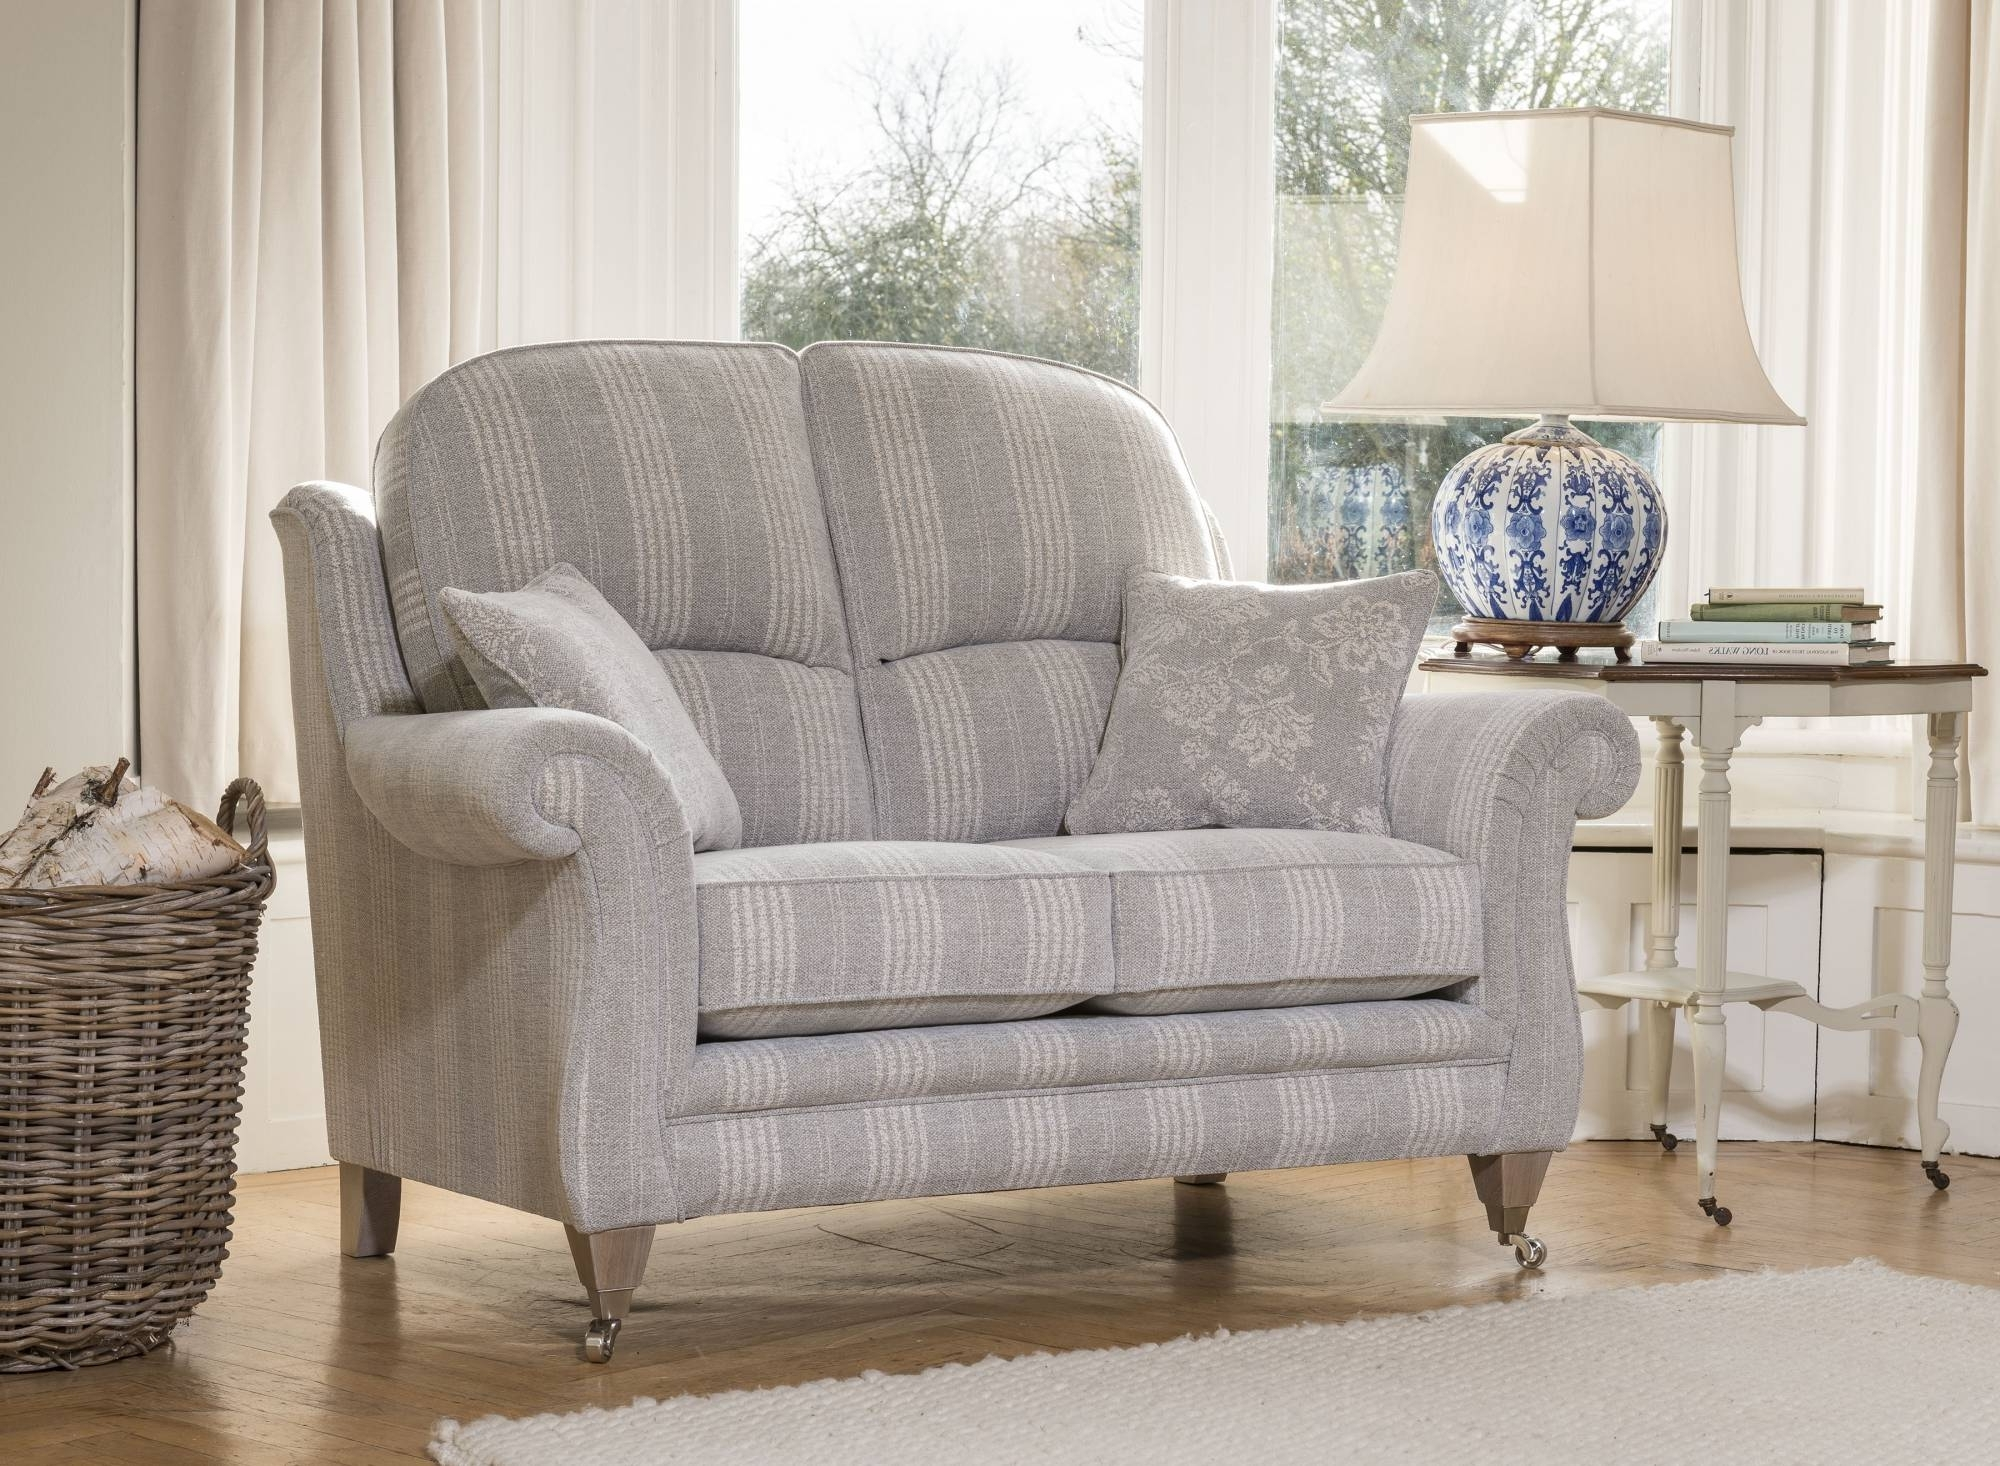 Small 2 Seater Sofas Regarding Well Liked Lovely Small 2 Seater Sofa 11 On Living Room Sofa Ideas With Small (View 18 of 20)